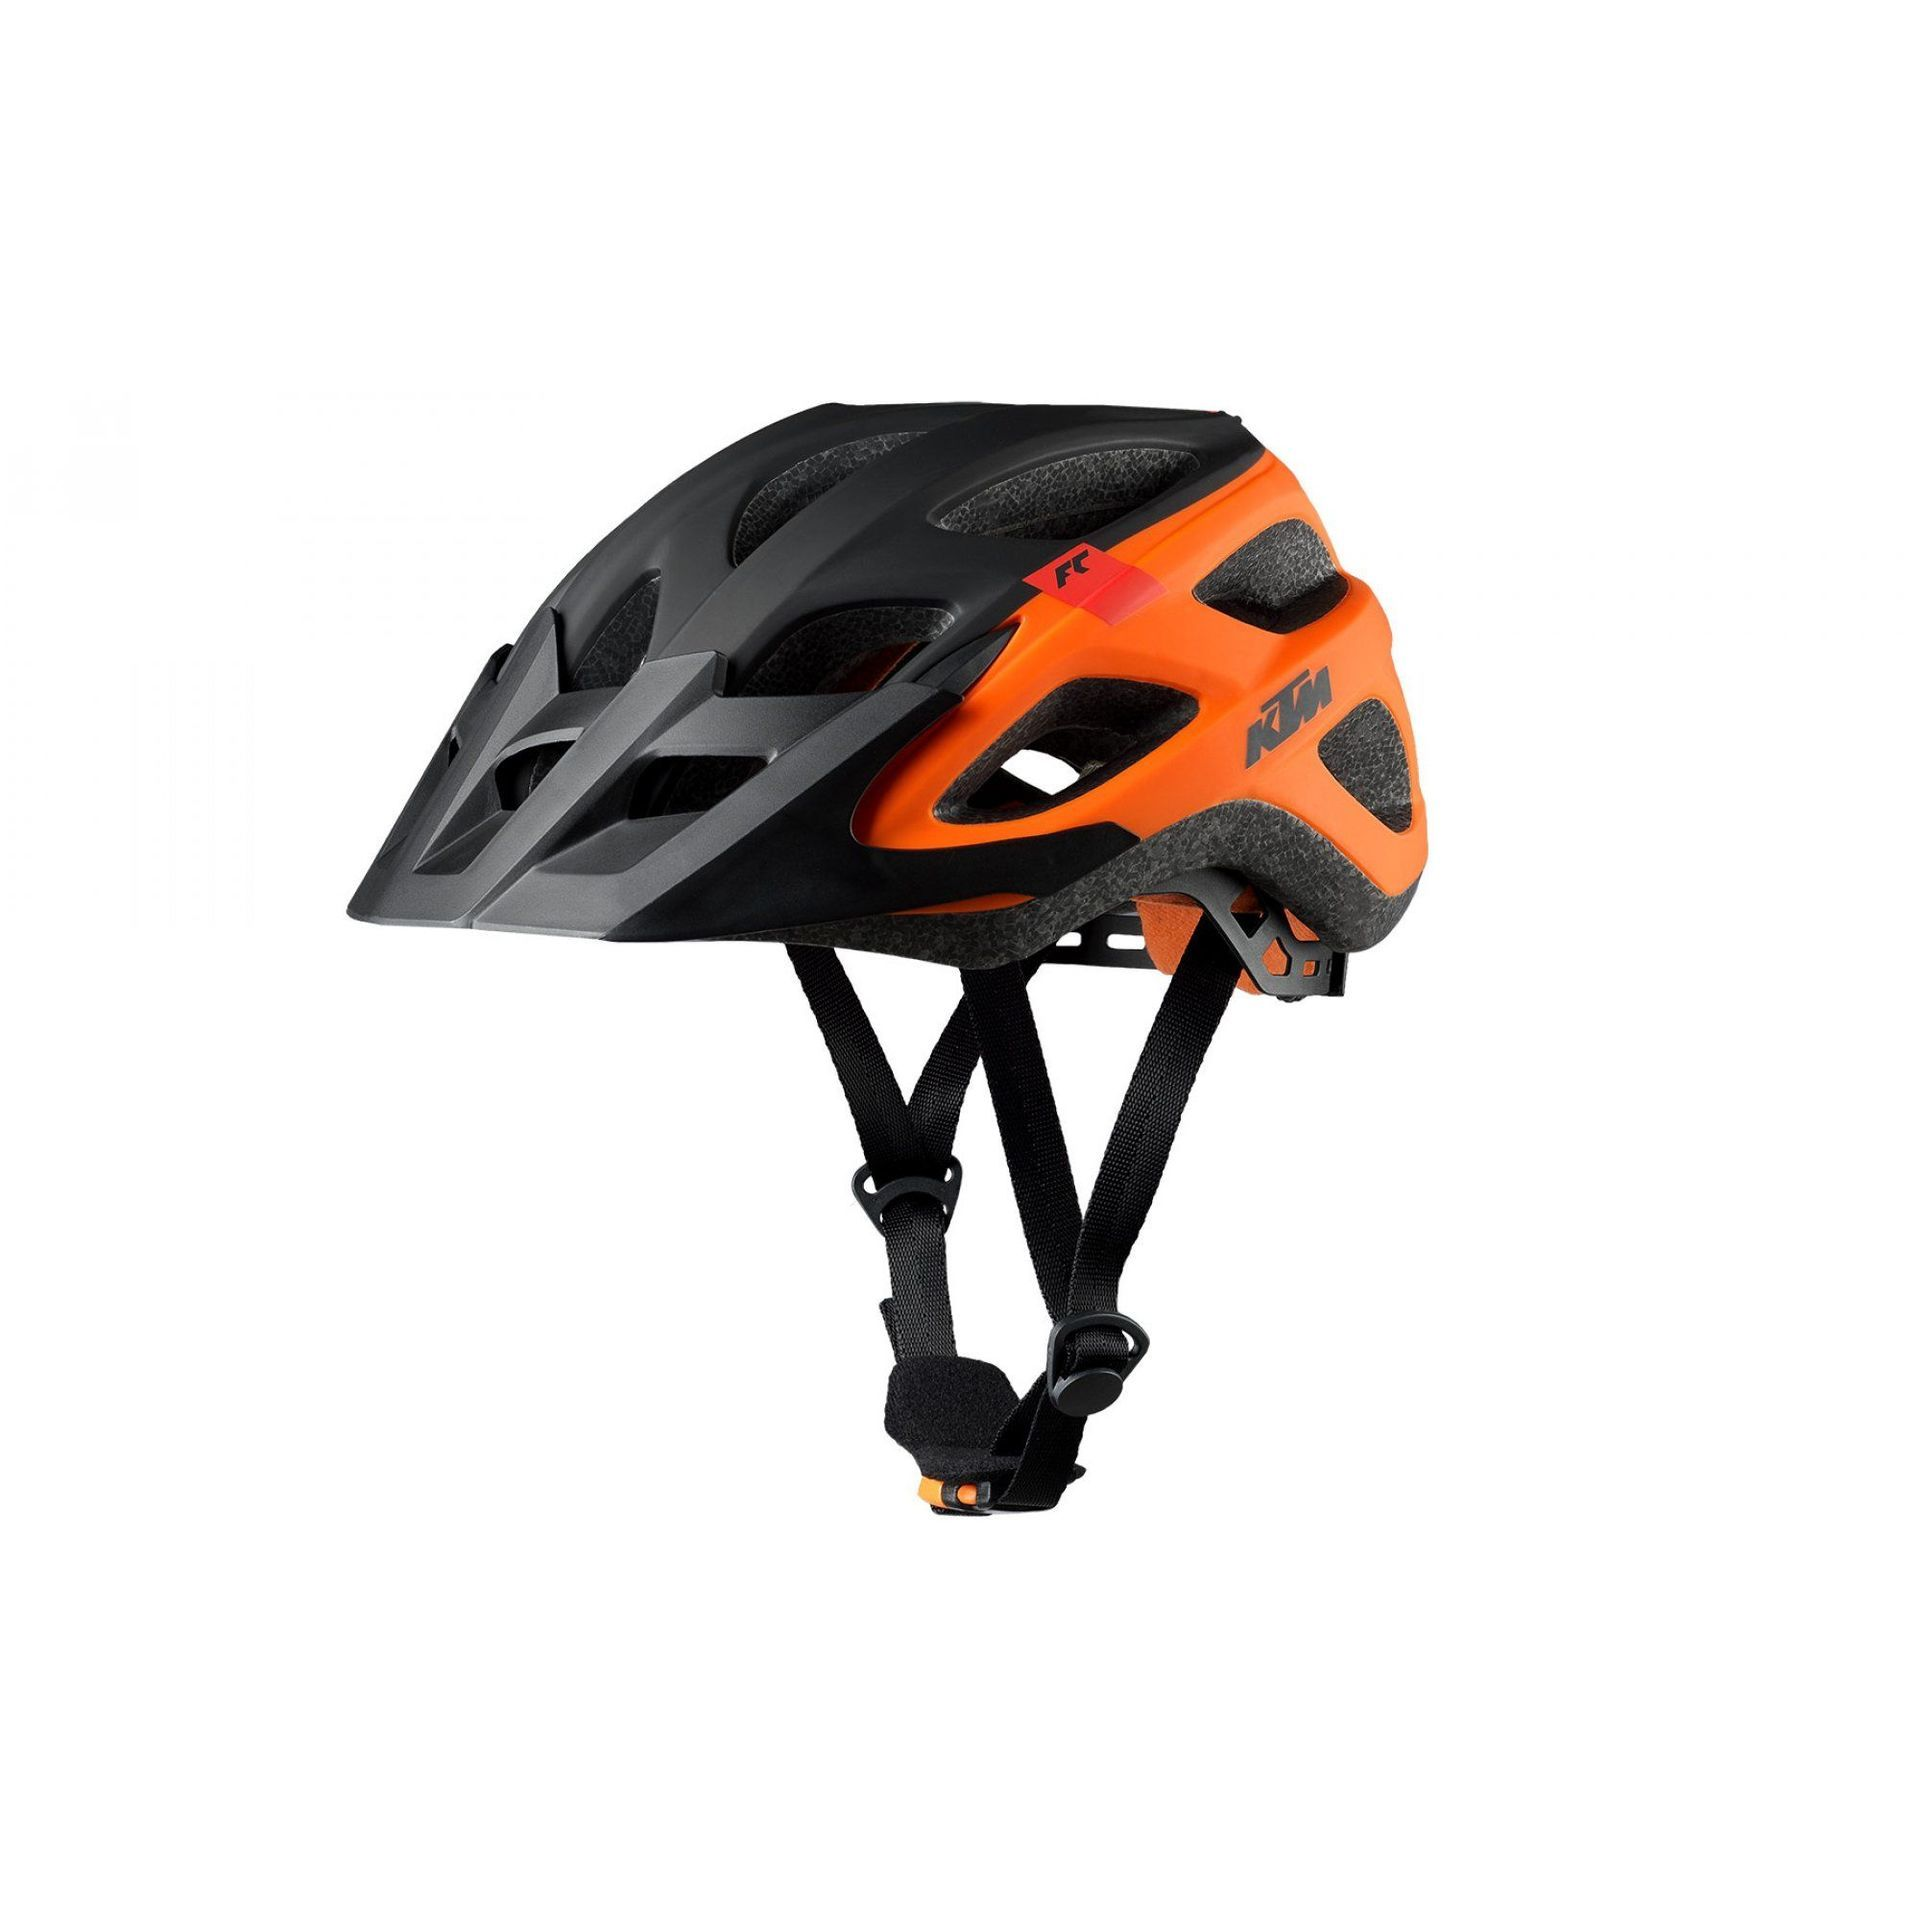 KASK ROWEROWY KTM FACTORY CHARACTER BLACK|ORANGE